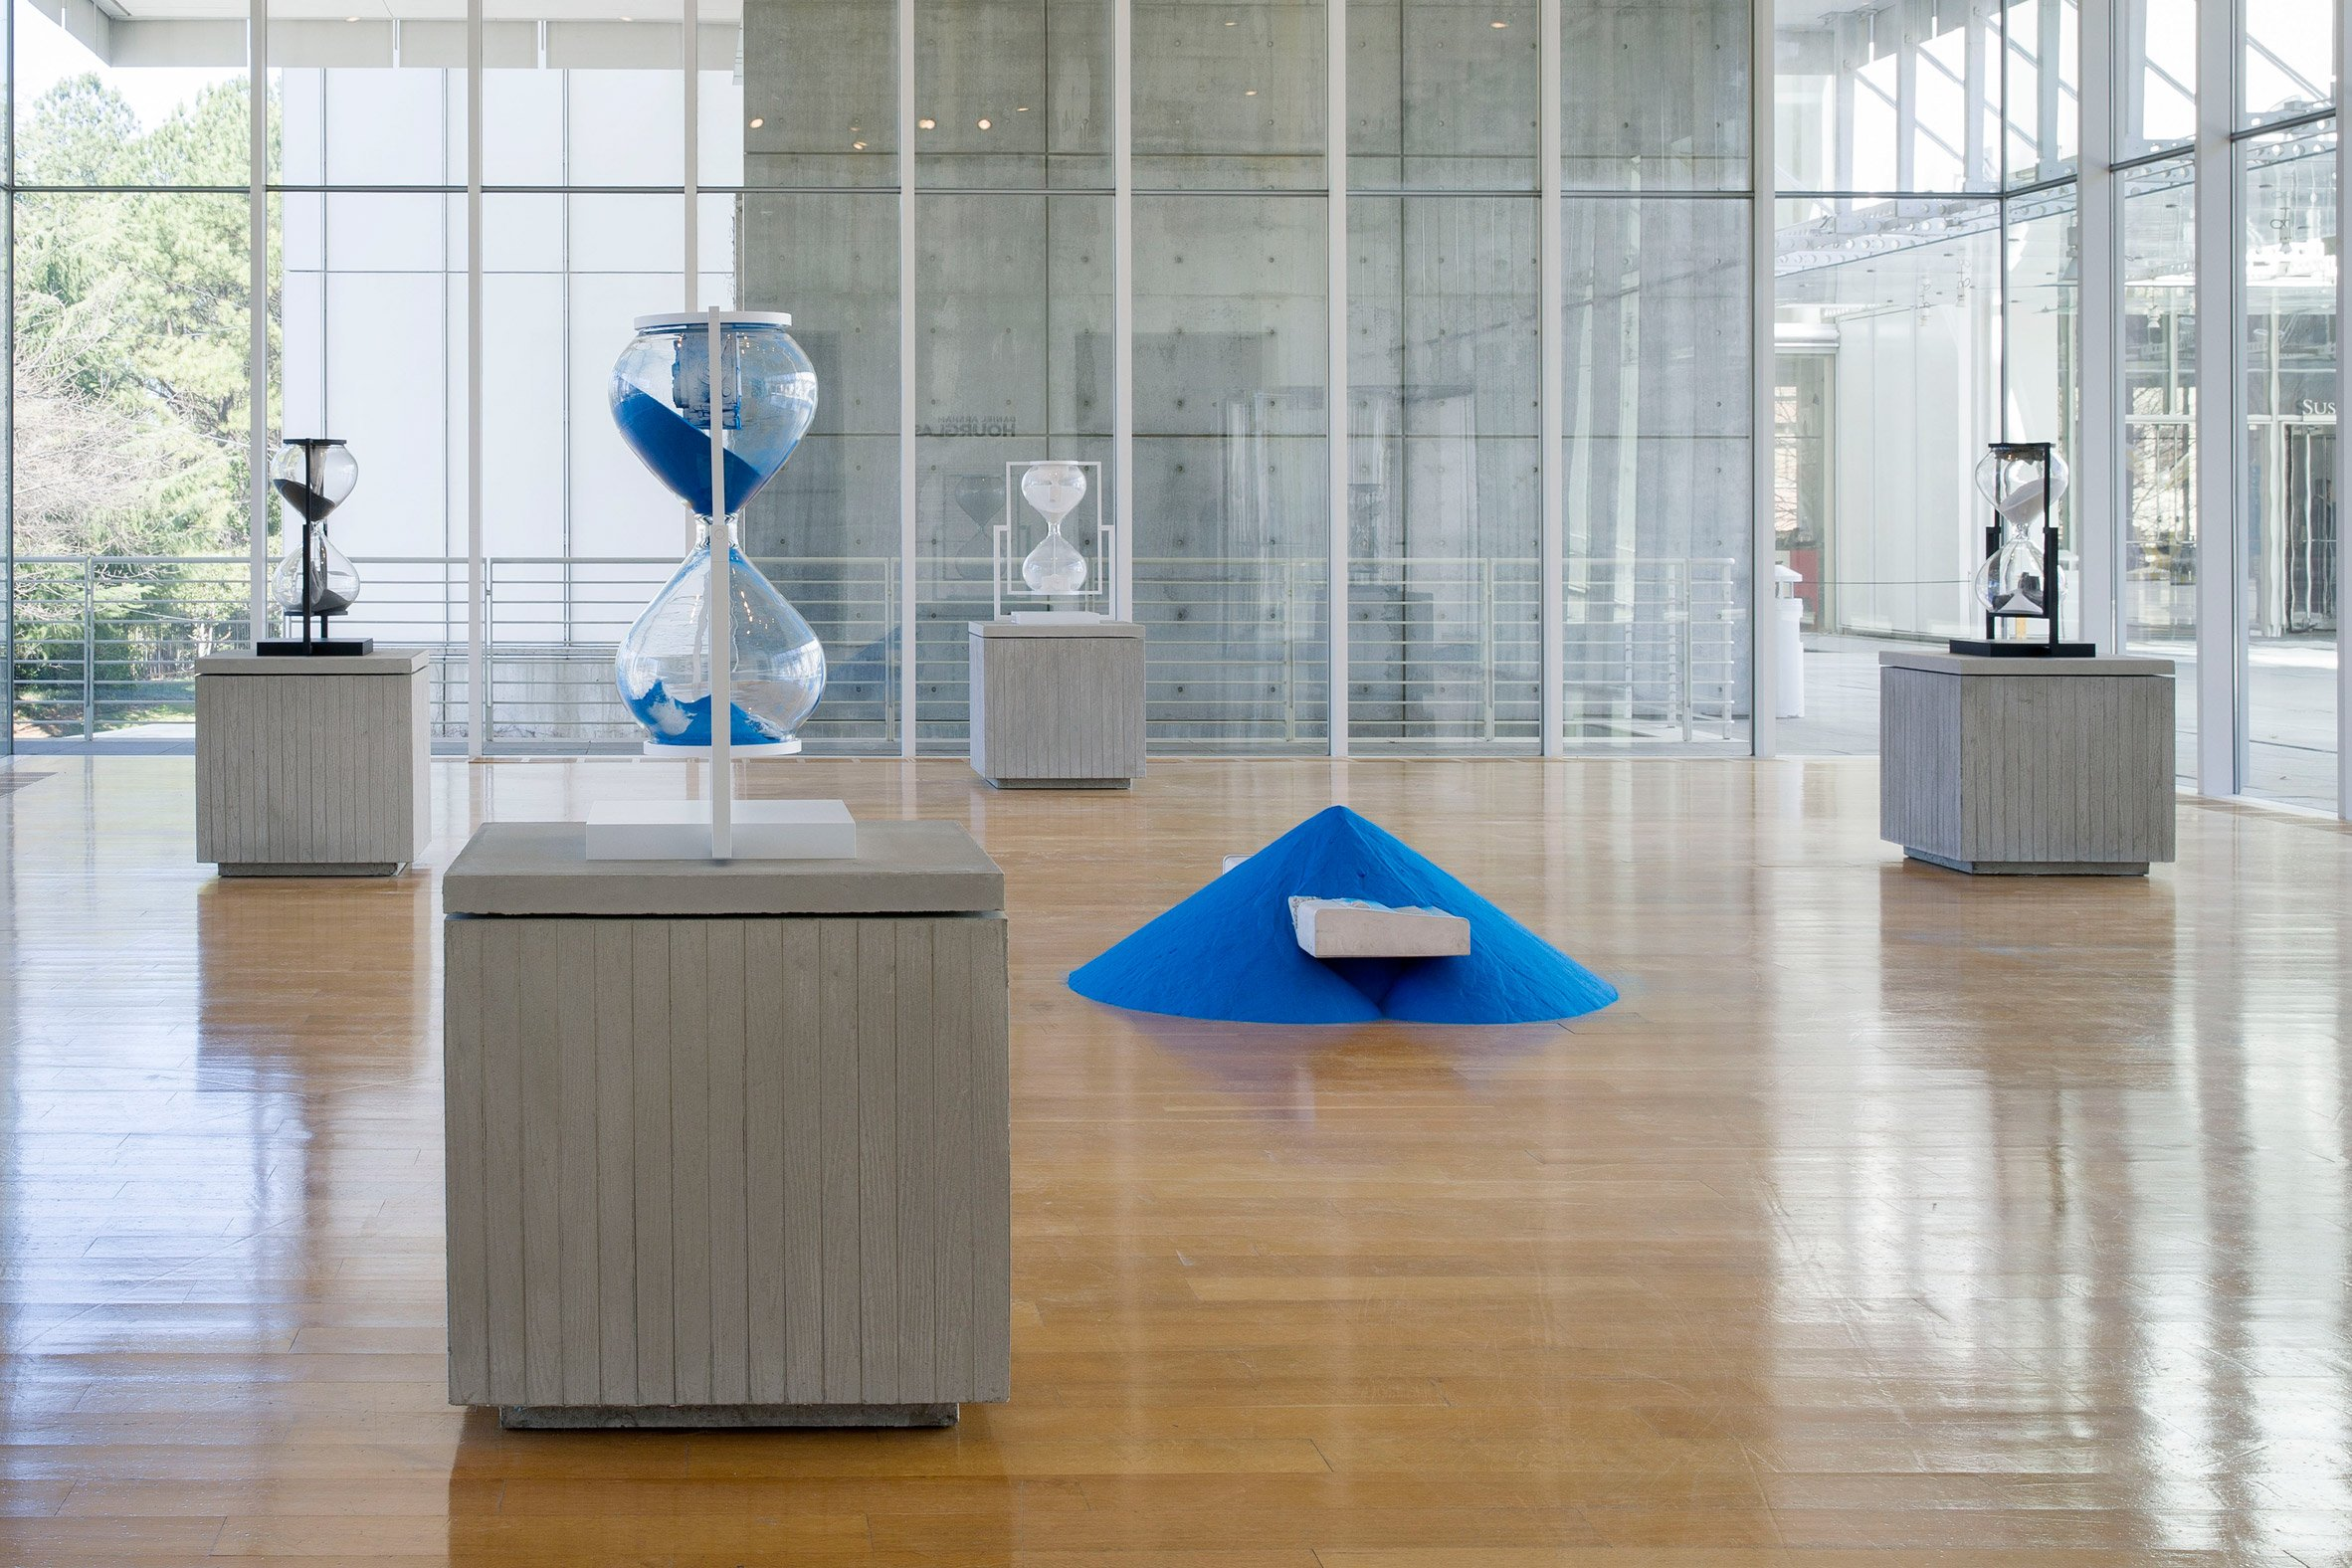 Daniel Arsham's Installation, Hourglass, at the High Museum of Art